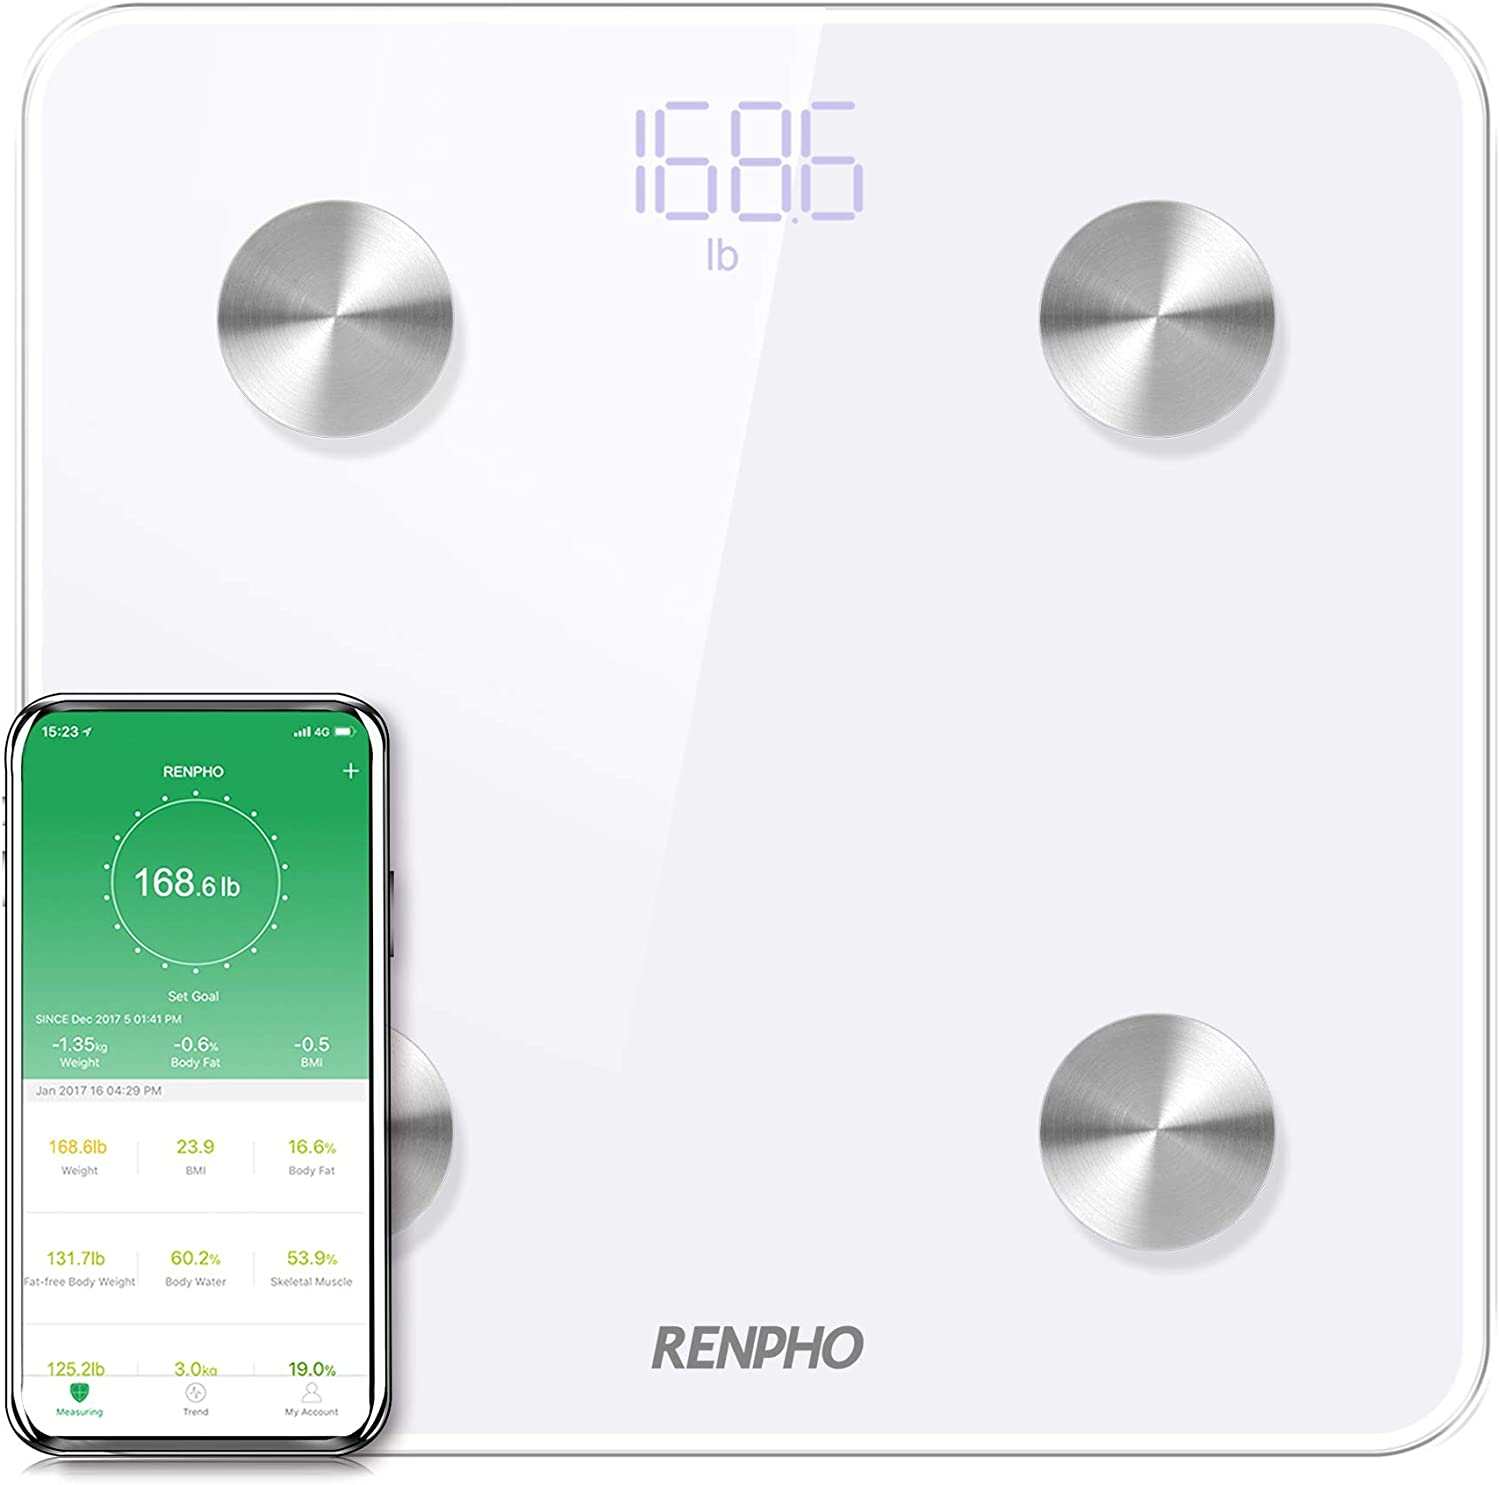 RENPHO Bluetooth Body Fat Scale Smart Digital Bathroom Weight BMI Scale Body Composition Monitor Analyzer with Smartphone App 396 lbs – White